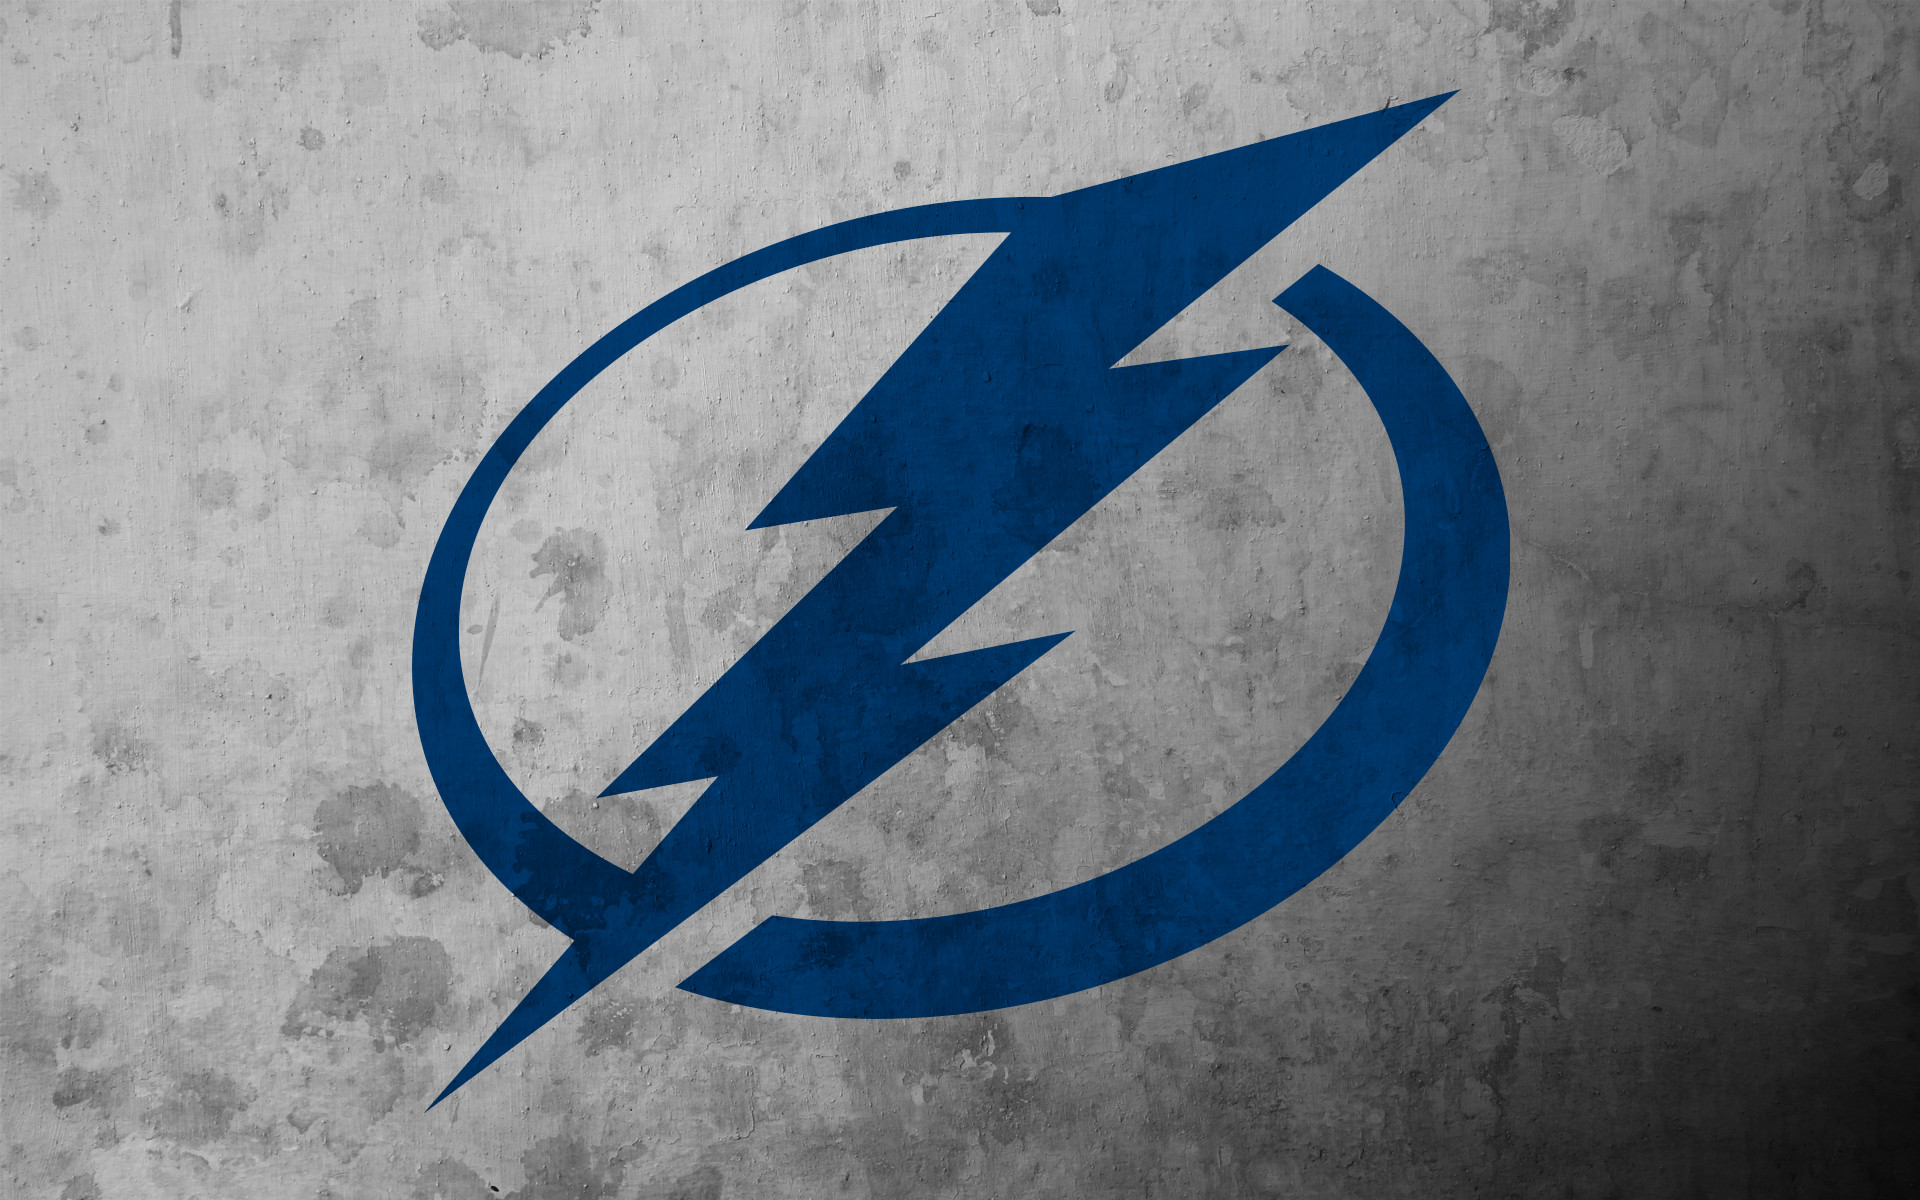 1920x1200 Tampa Bay Lightning Wallpaper 2015 Collection of Tampa